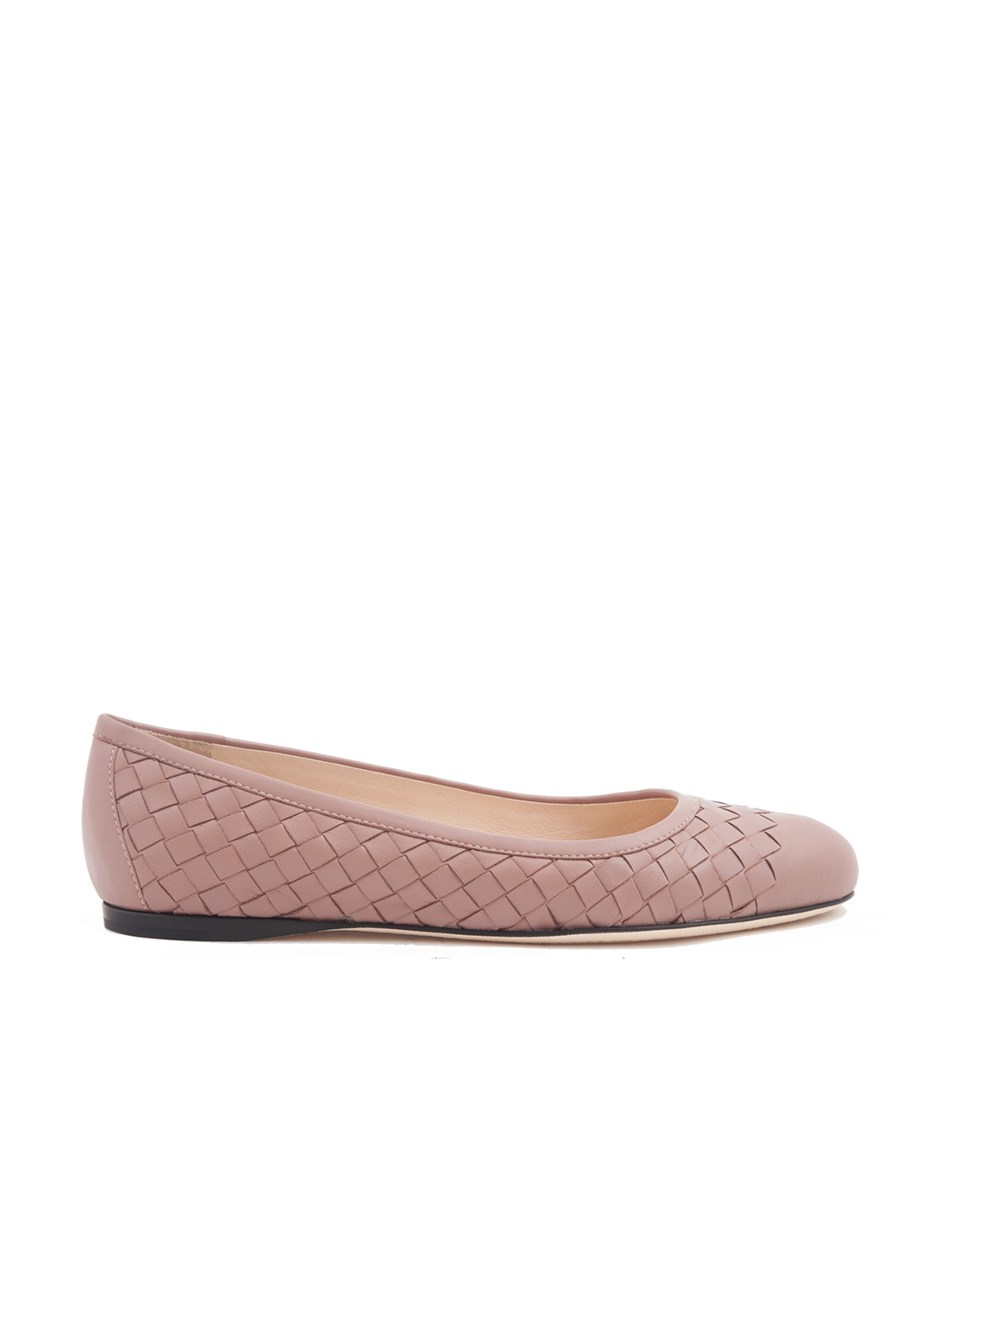 BOTTEGA VENETA PUMPS